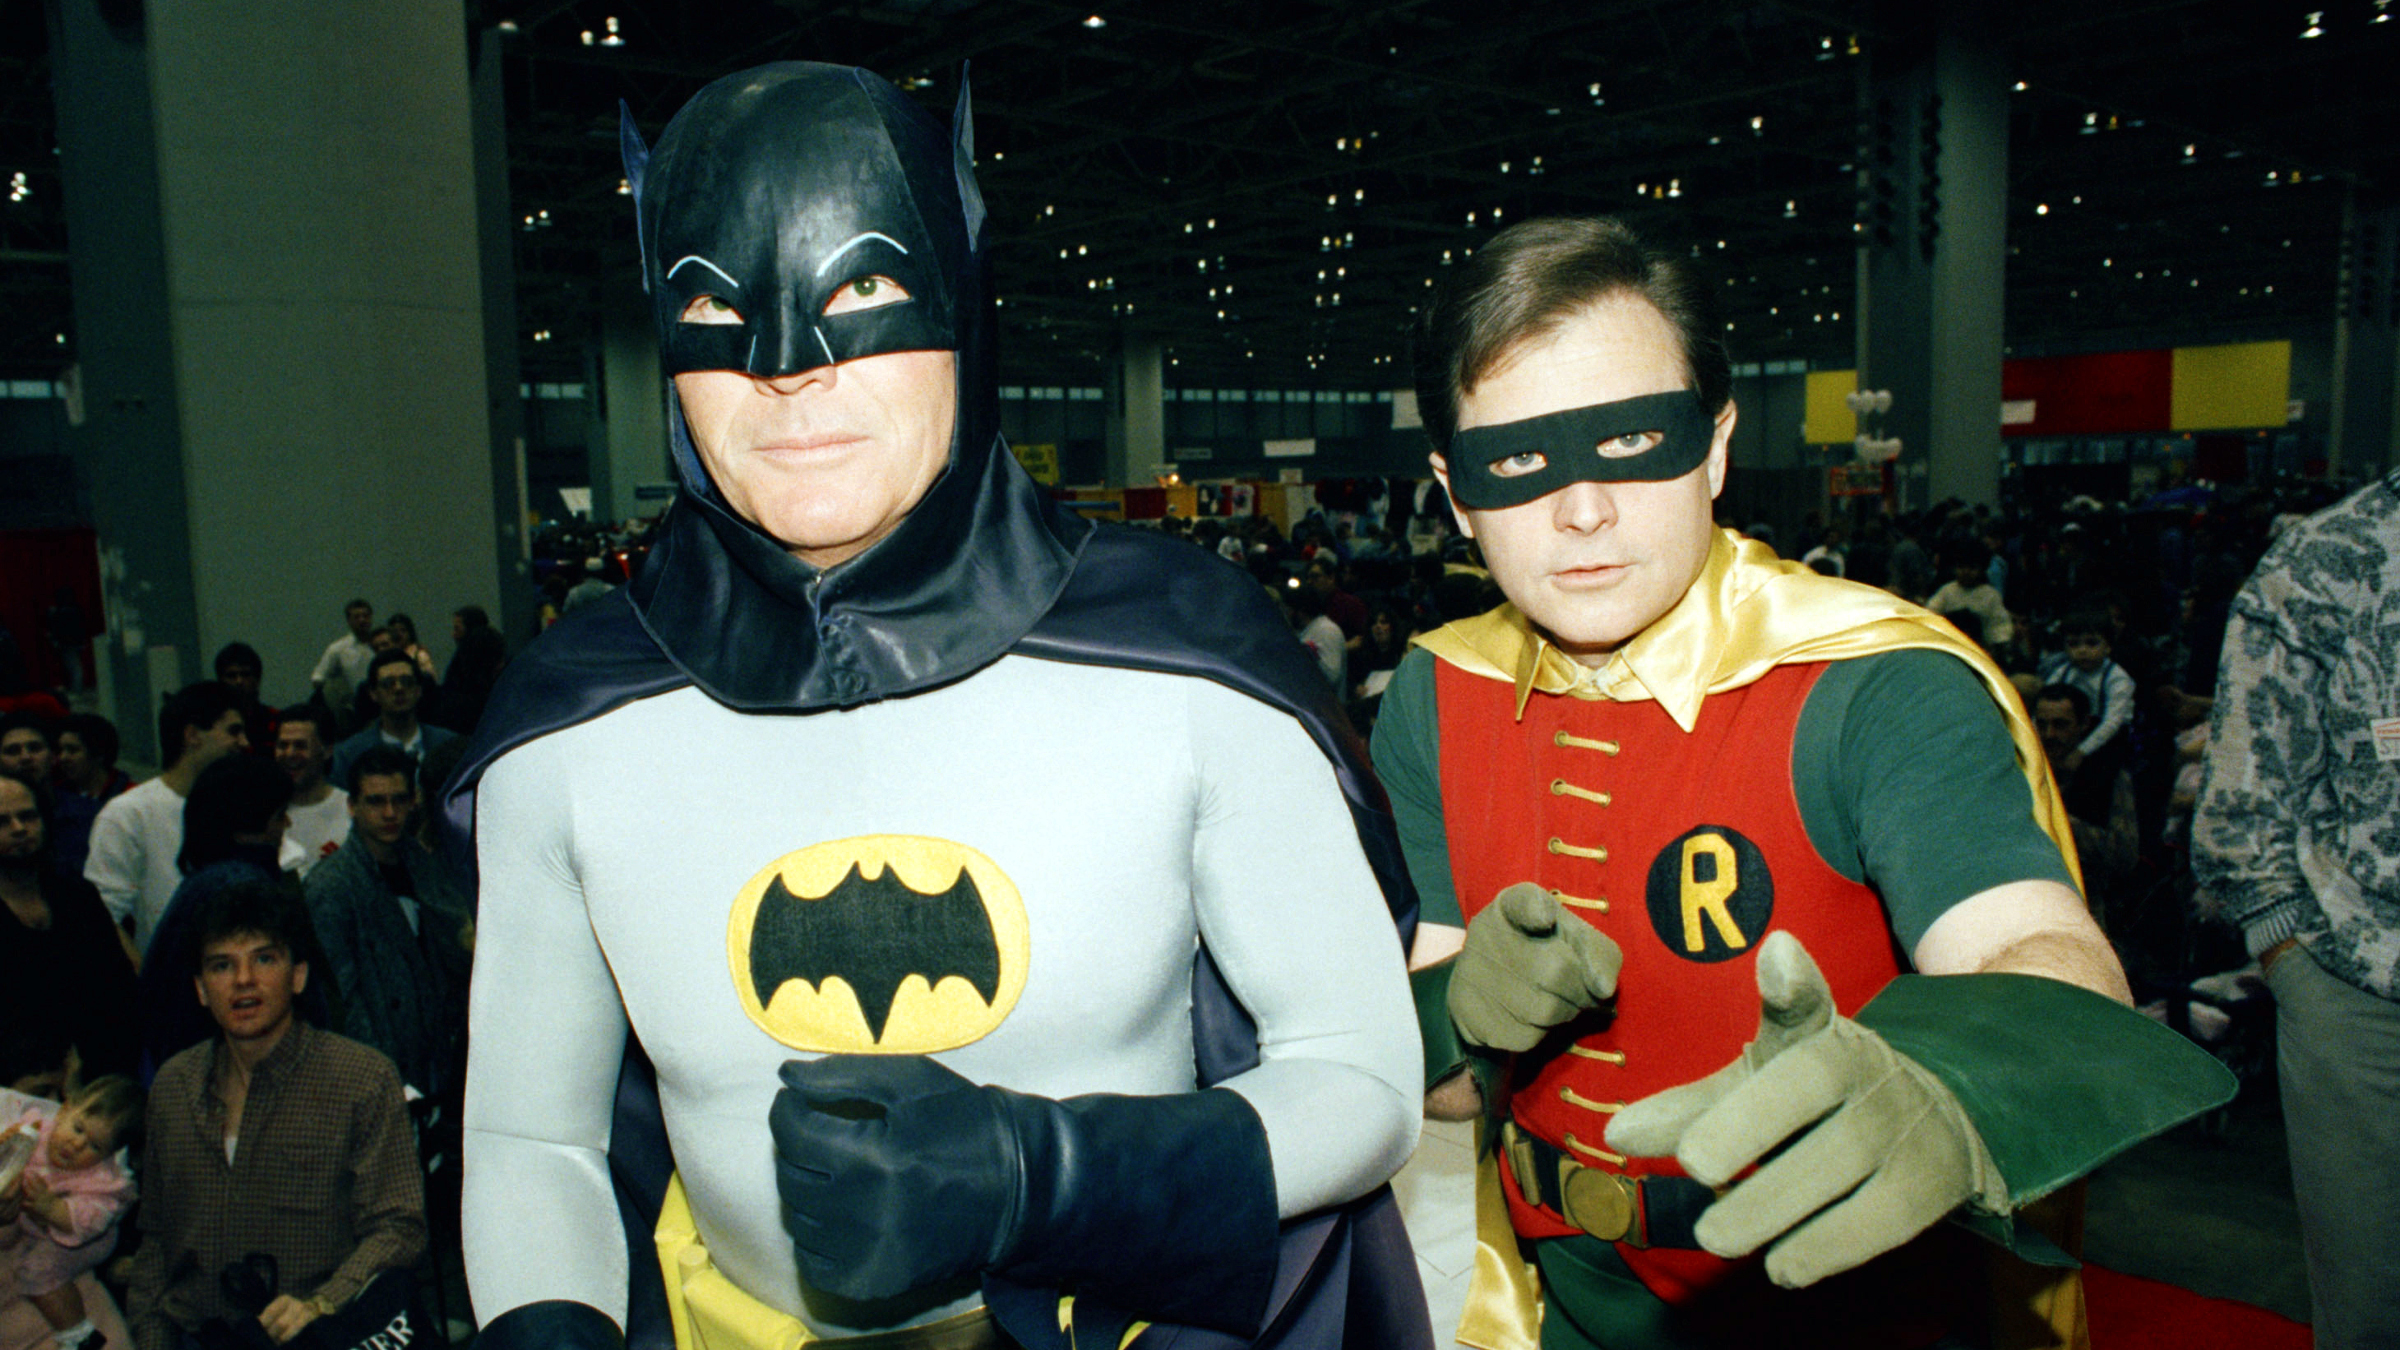 """Actors Adam West, left, and Burt Ward dresses as their characters (Zappp!) """"Batman"""" and (Powww!) """"Robin,"""" pause during an appearance January 27, 1989 at the """"World of Wheels"""" custom car show, Sunday in Chicago. The two, who are enjoying a revival of interest in the old """"Batman"""" TV show, are featured in several upcoming movies."""